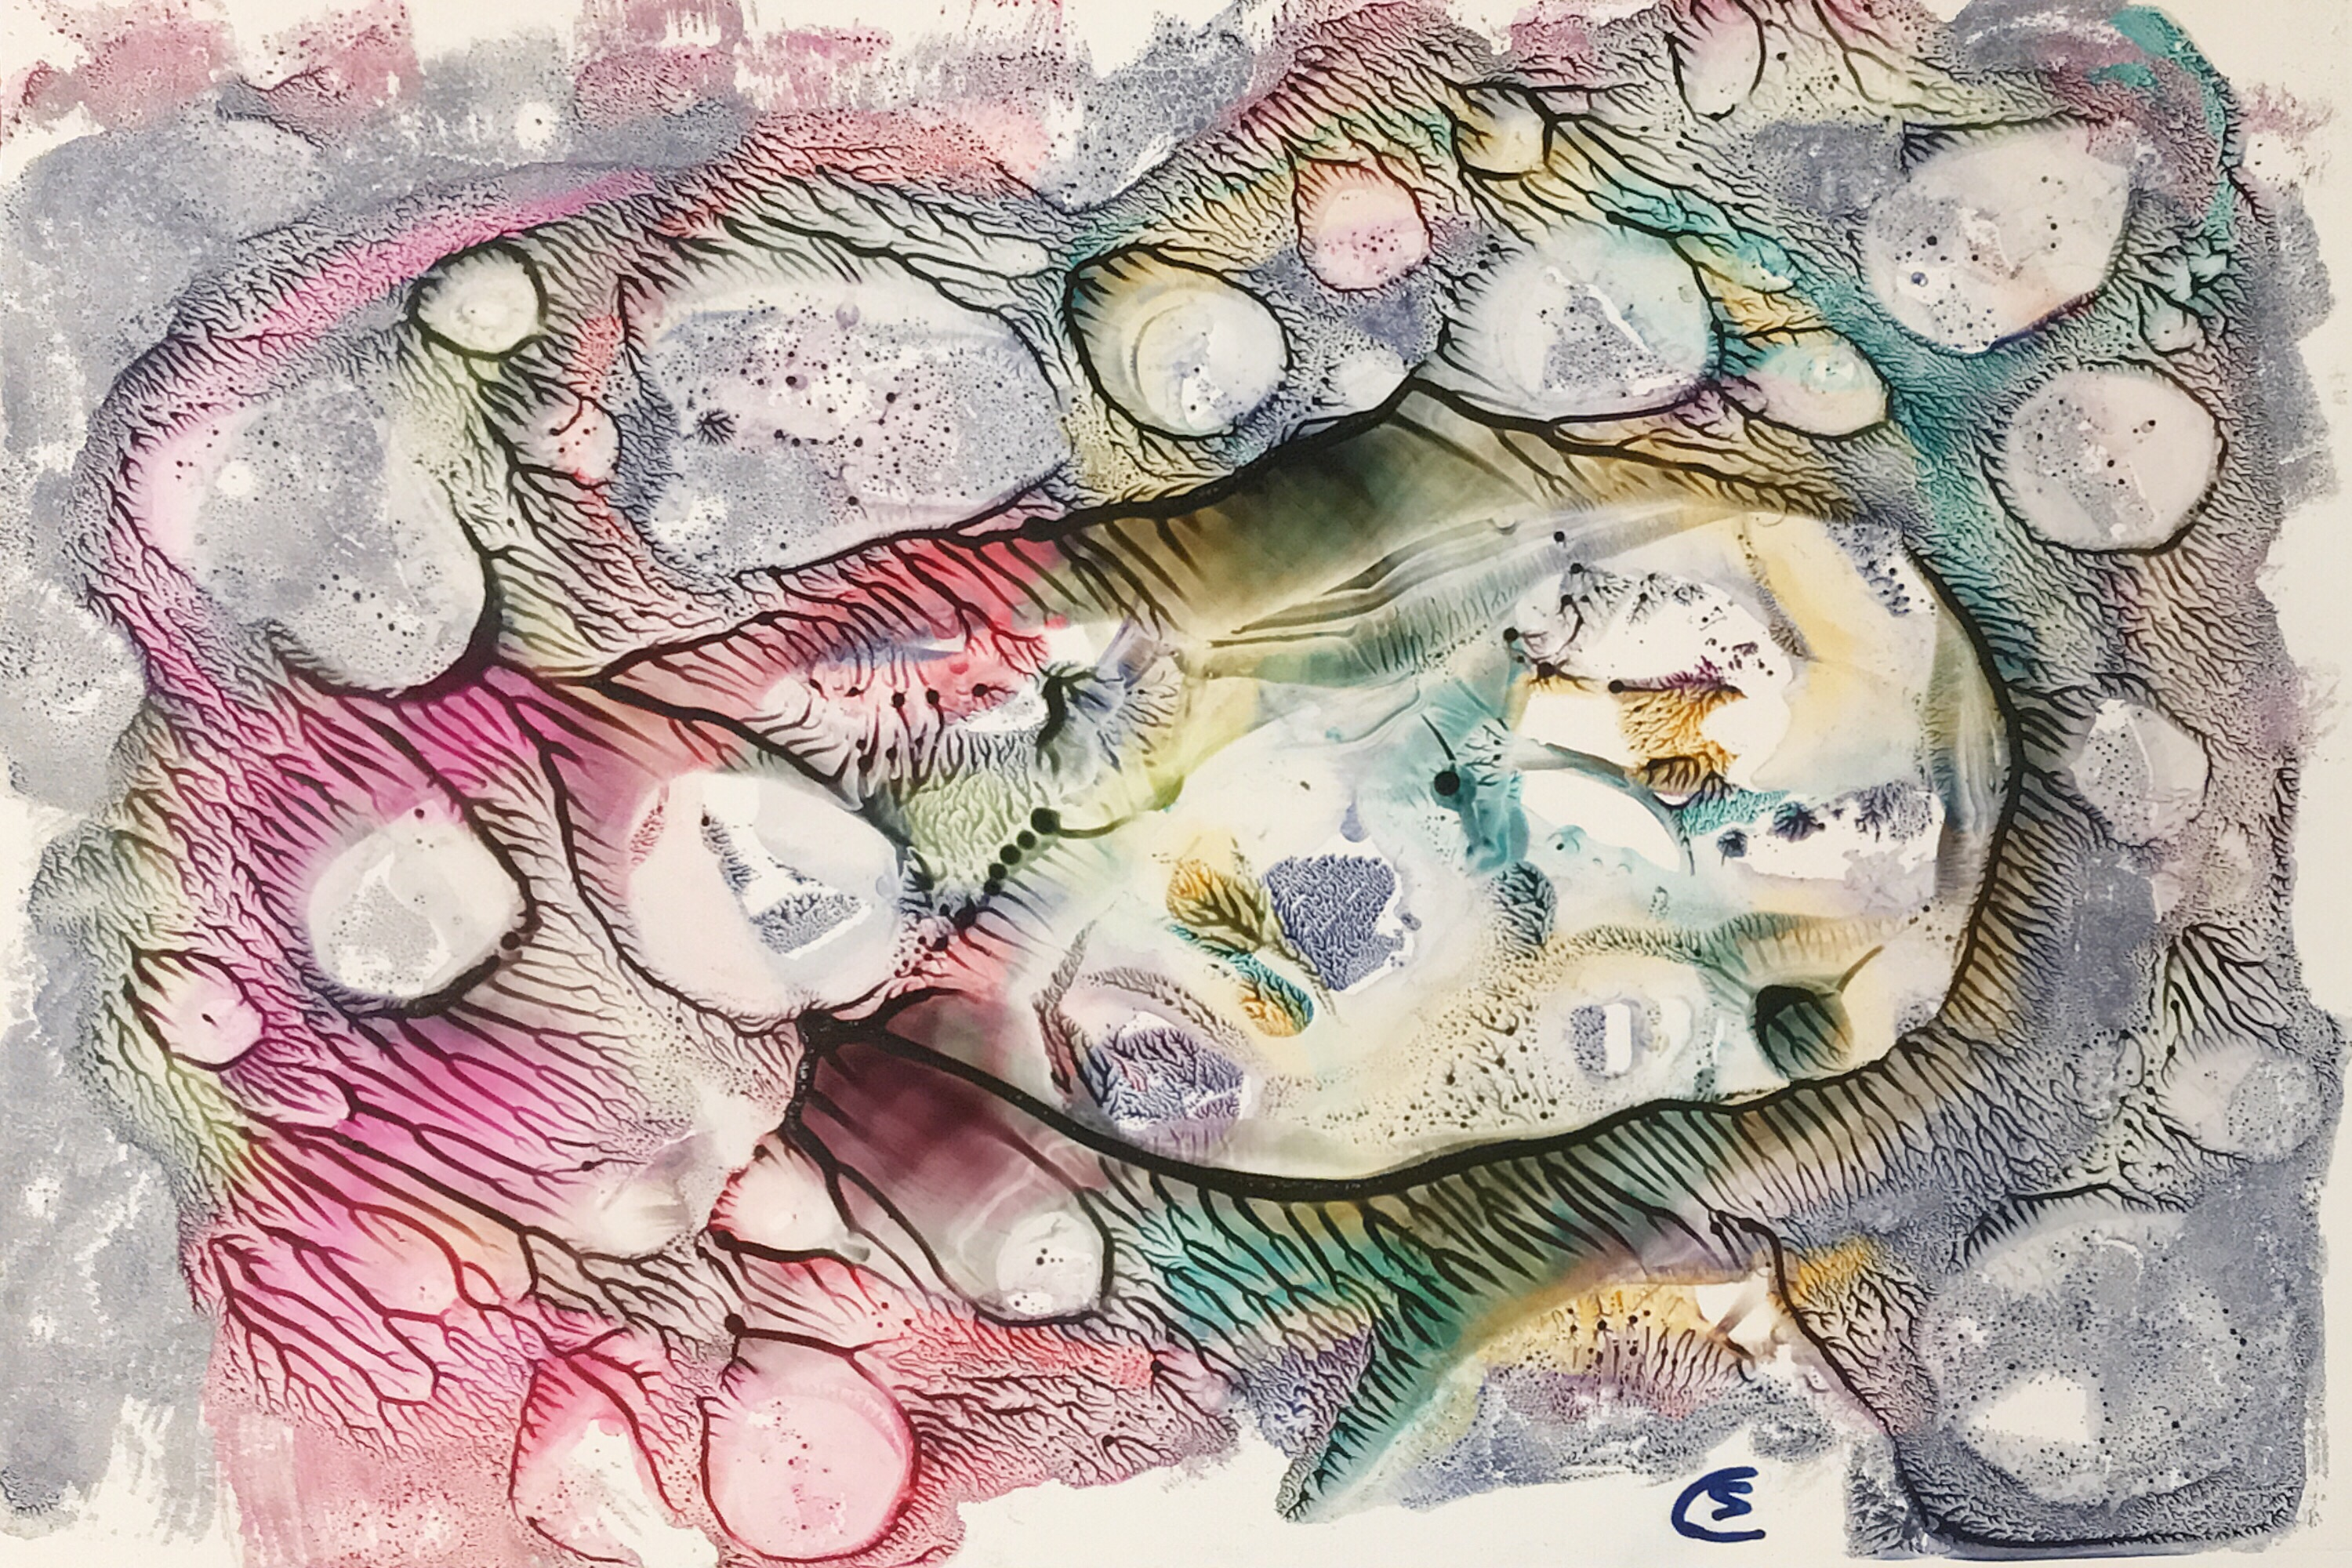 Coral reef / Korallenriff; encaustic on paper, 30x21